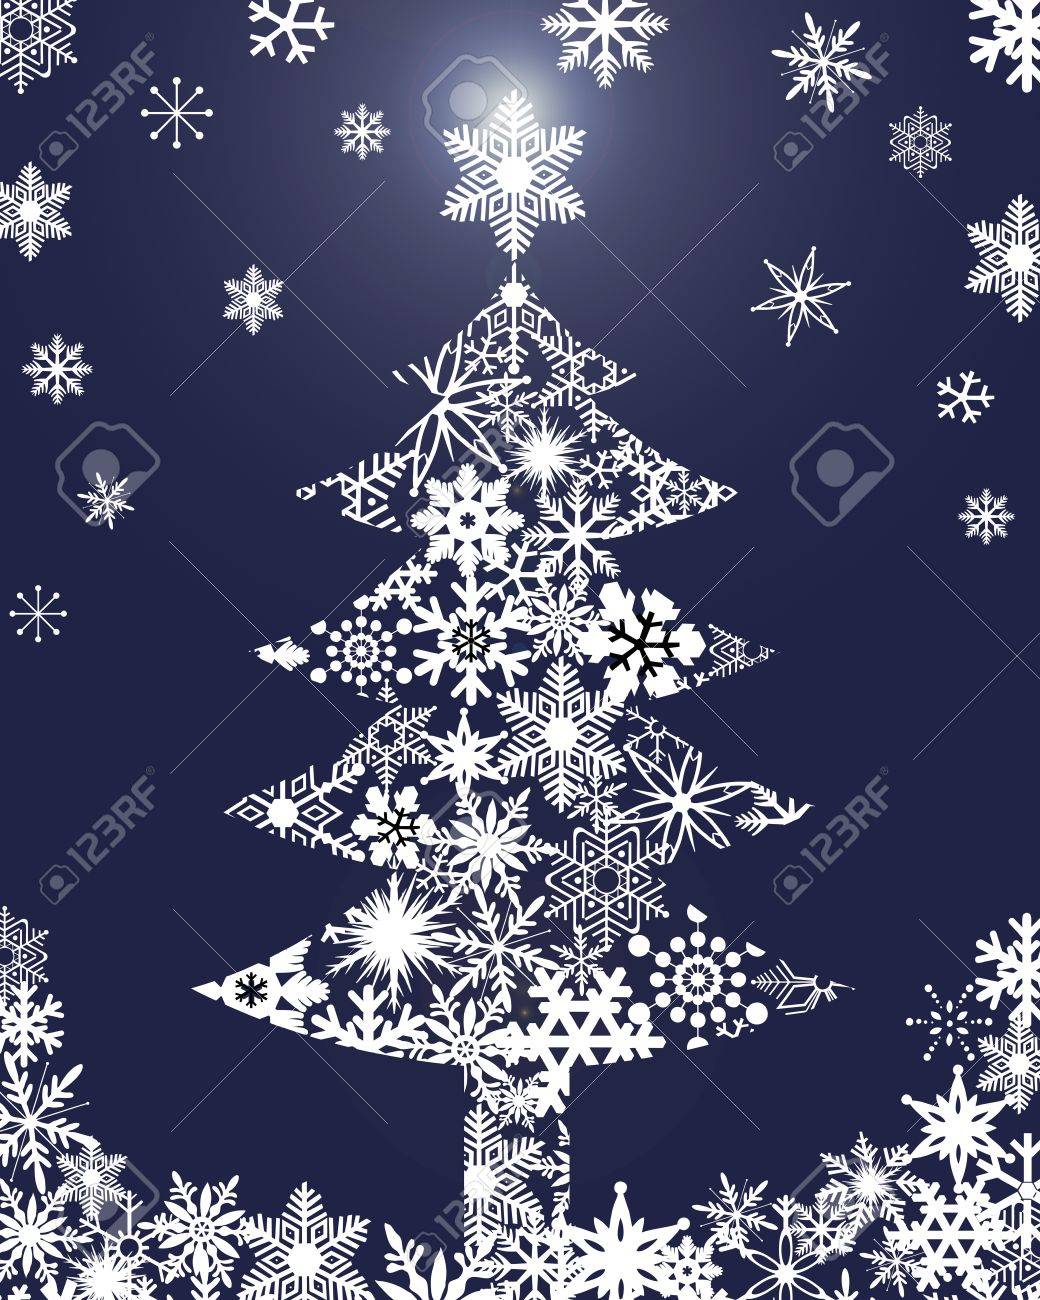 Christmas Tree with Snowflakes Blue Background Clipart Illustration Stock Illustration - 10836814